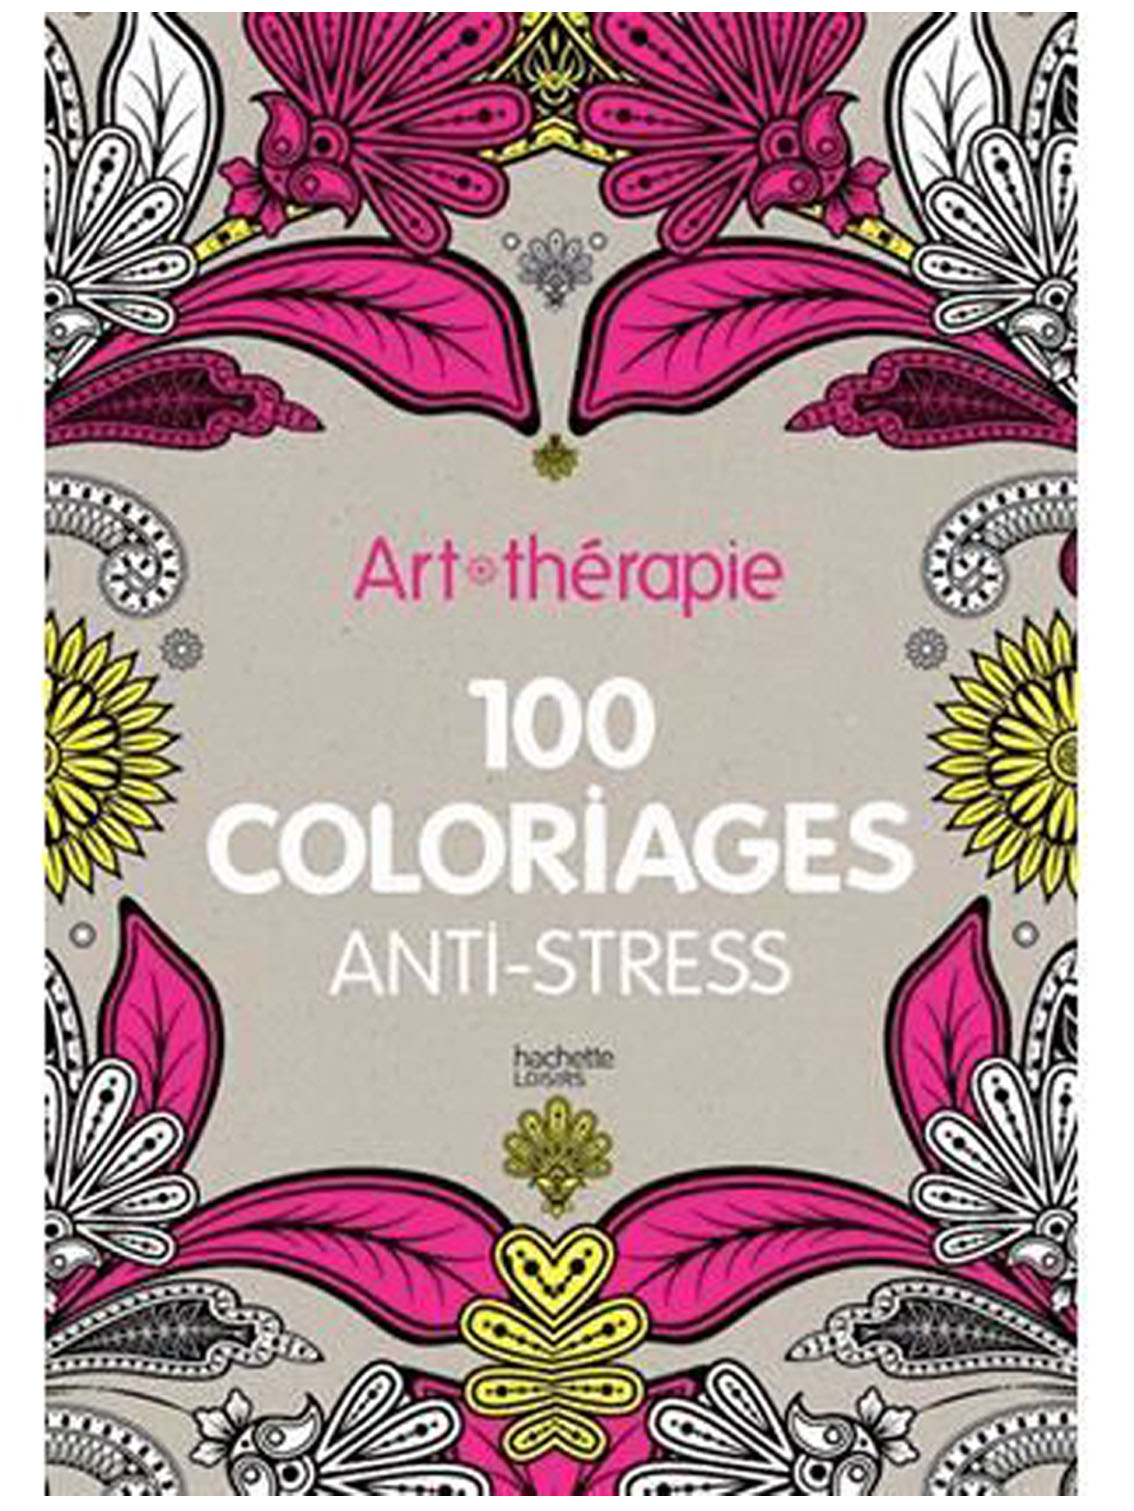 Coloriages anti-stress, Hachette, 12,90€